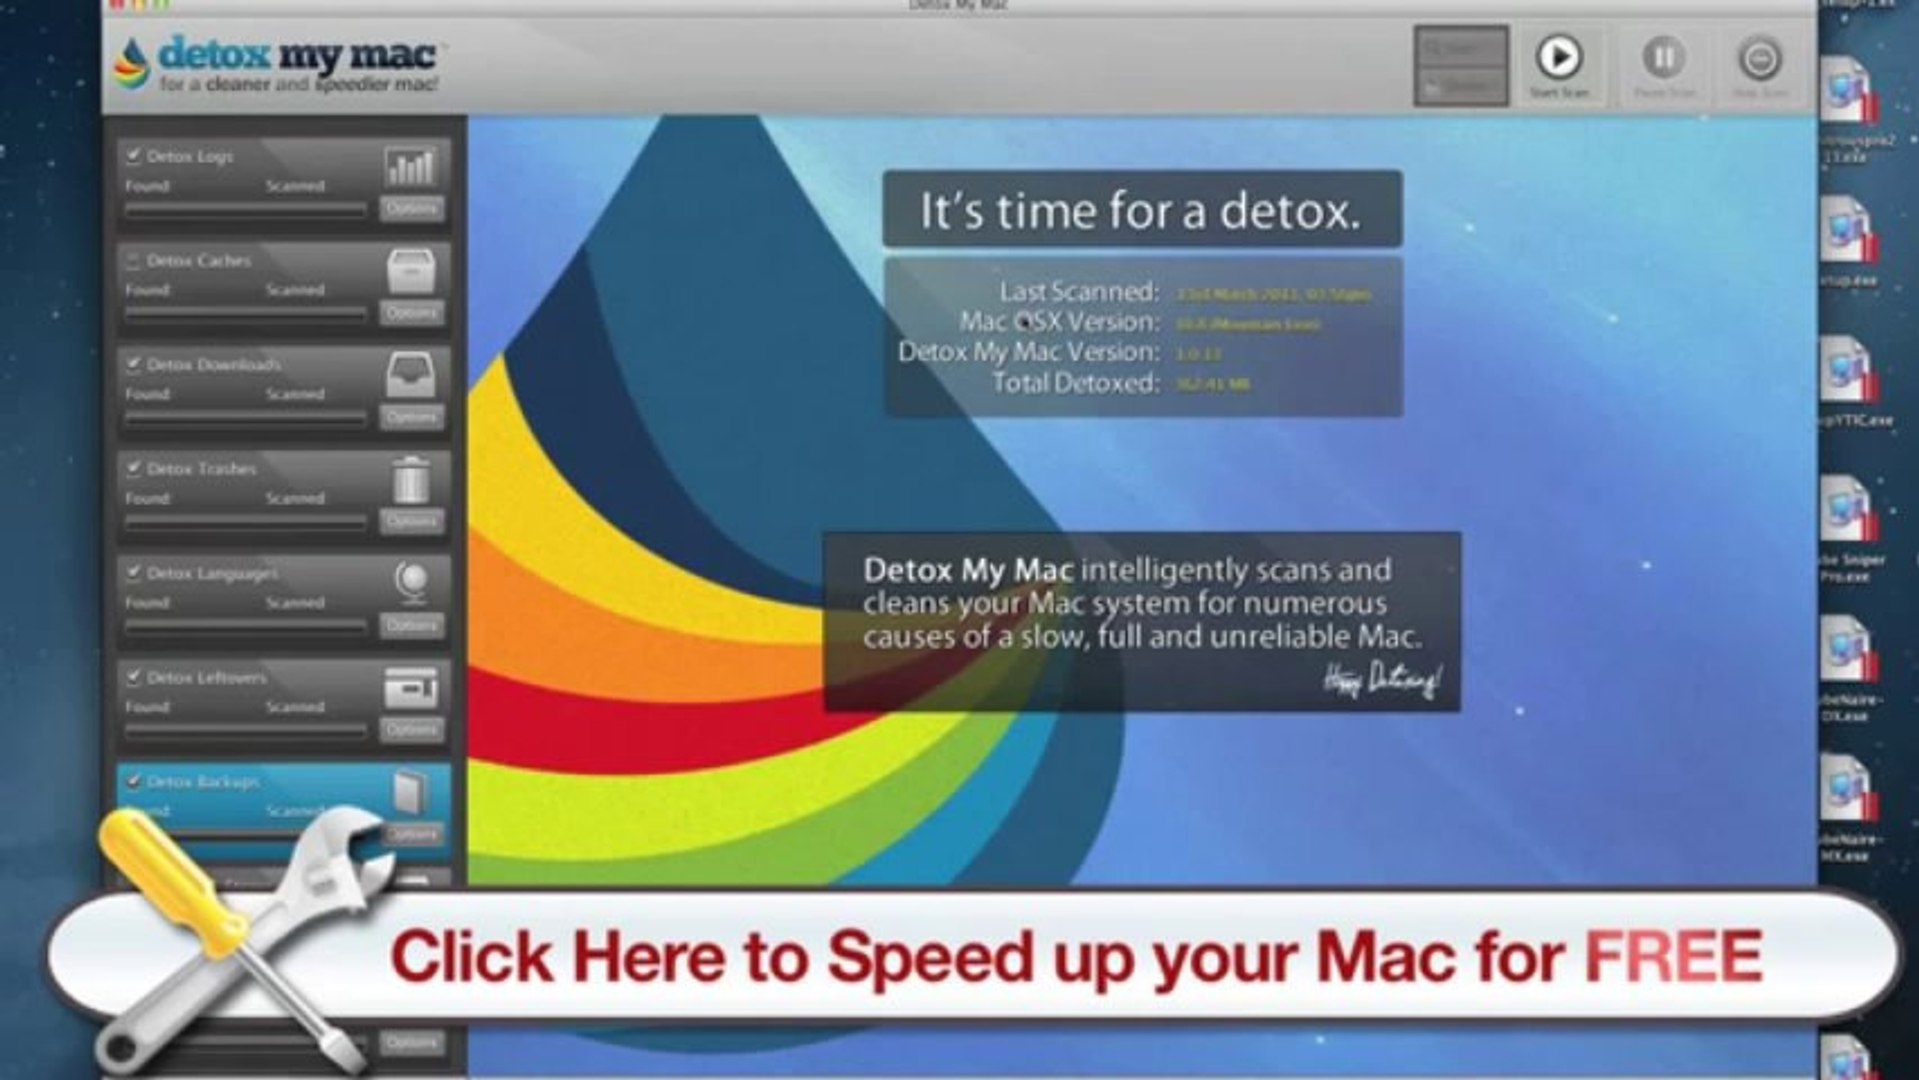 Mac Disk Cleanup - Detox My Mac will Help You with Mac Disk Cleanup